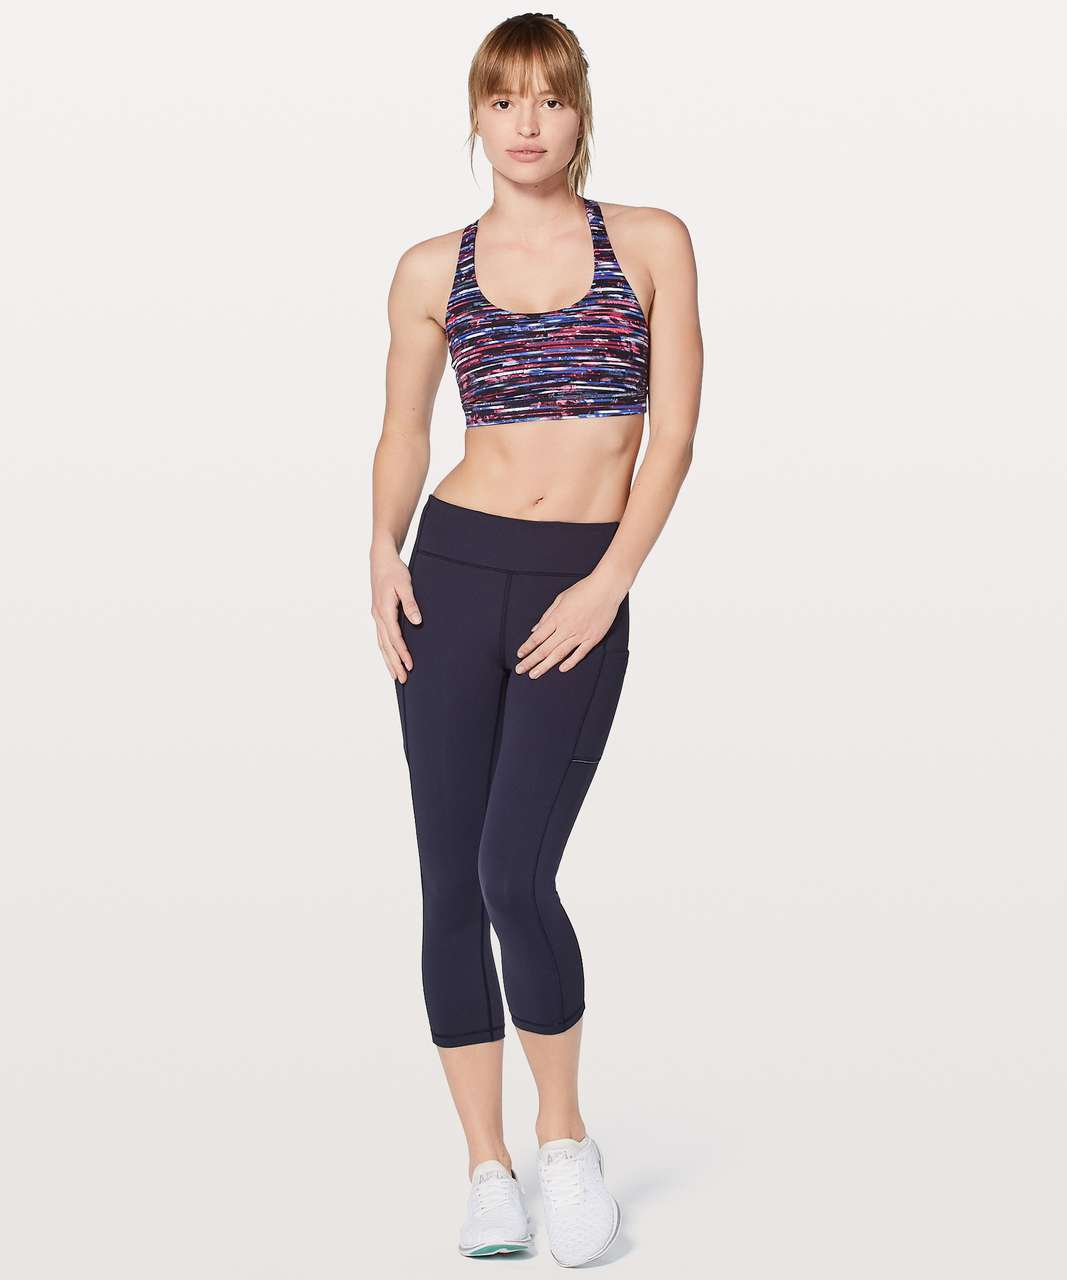 Lululemon Energy Bra - Hinshu Alpine White Multi